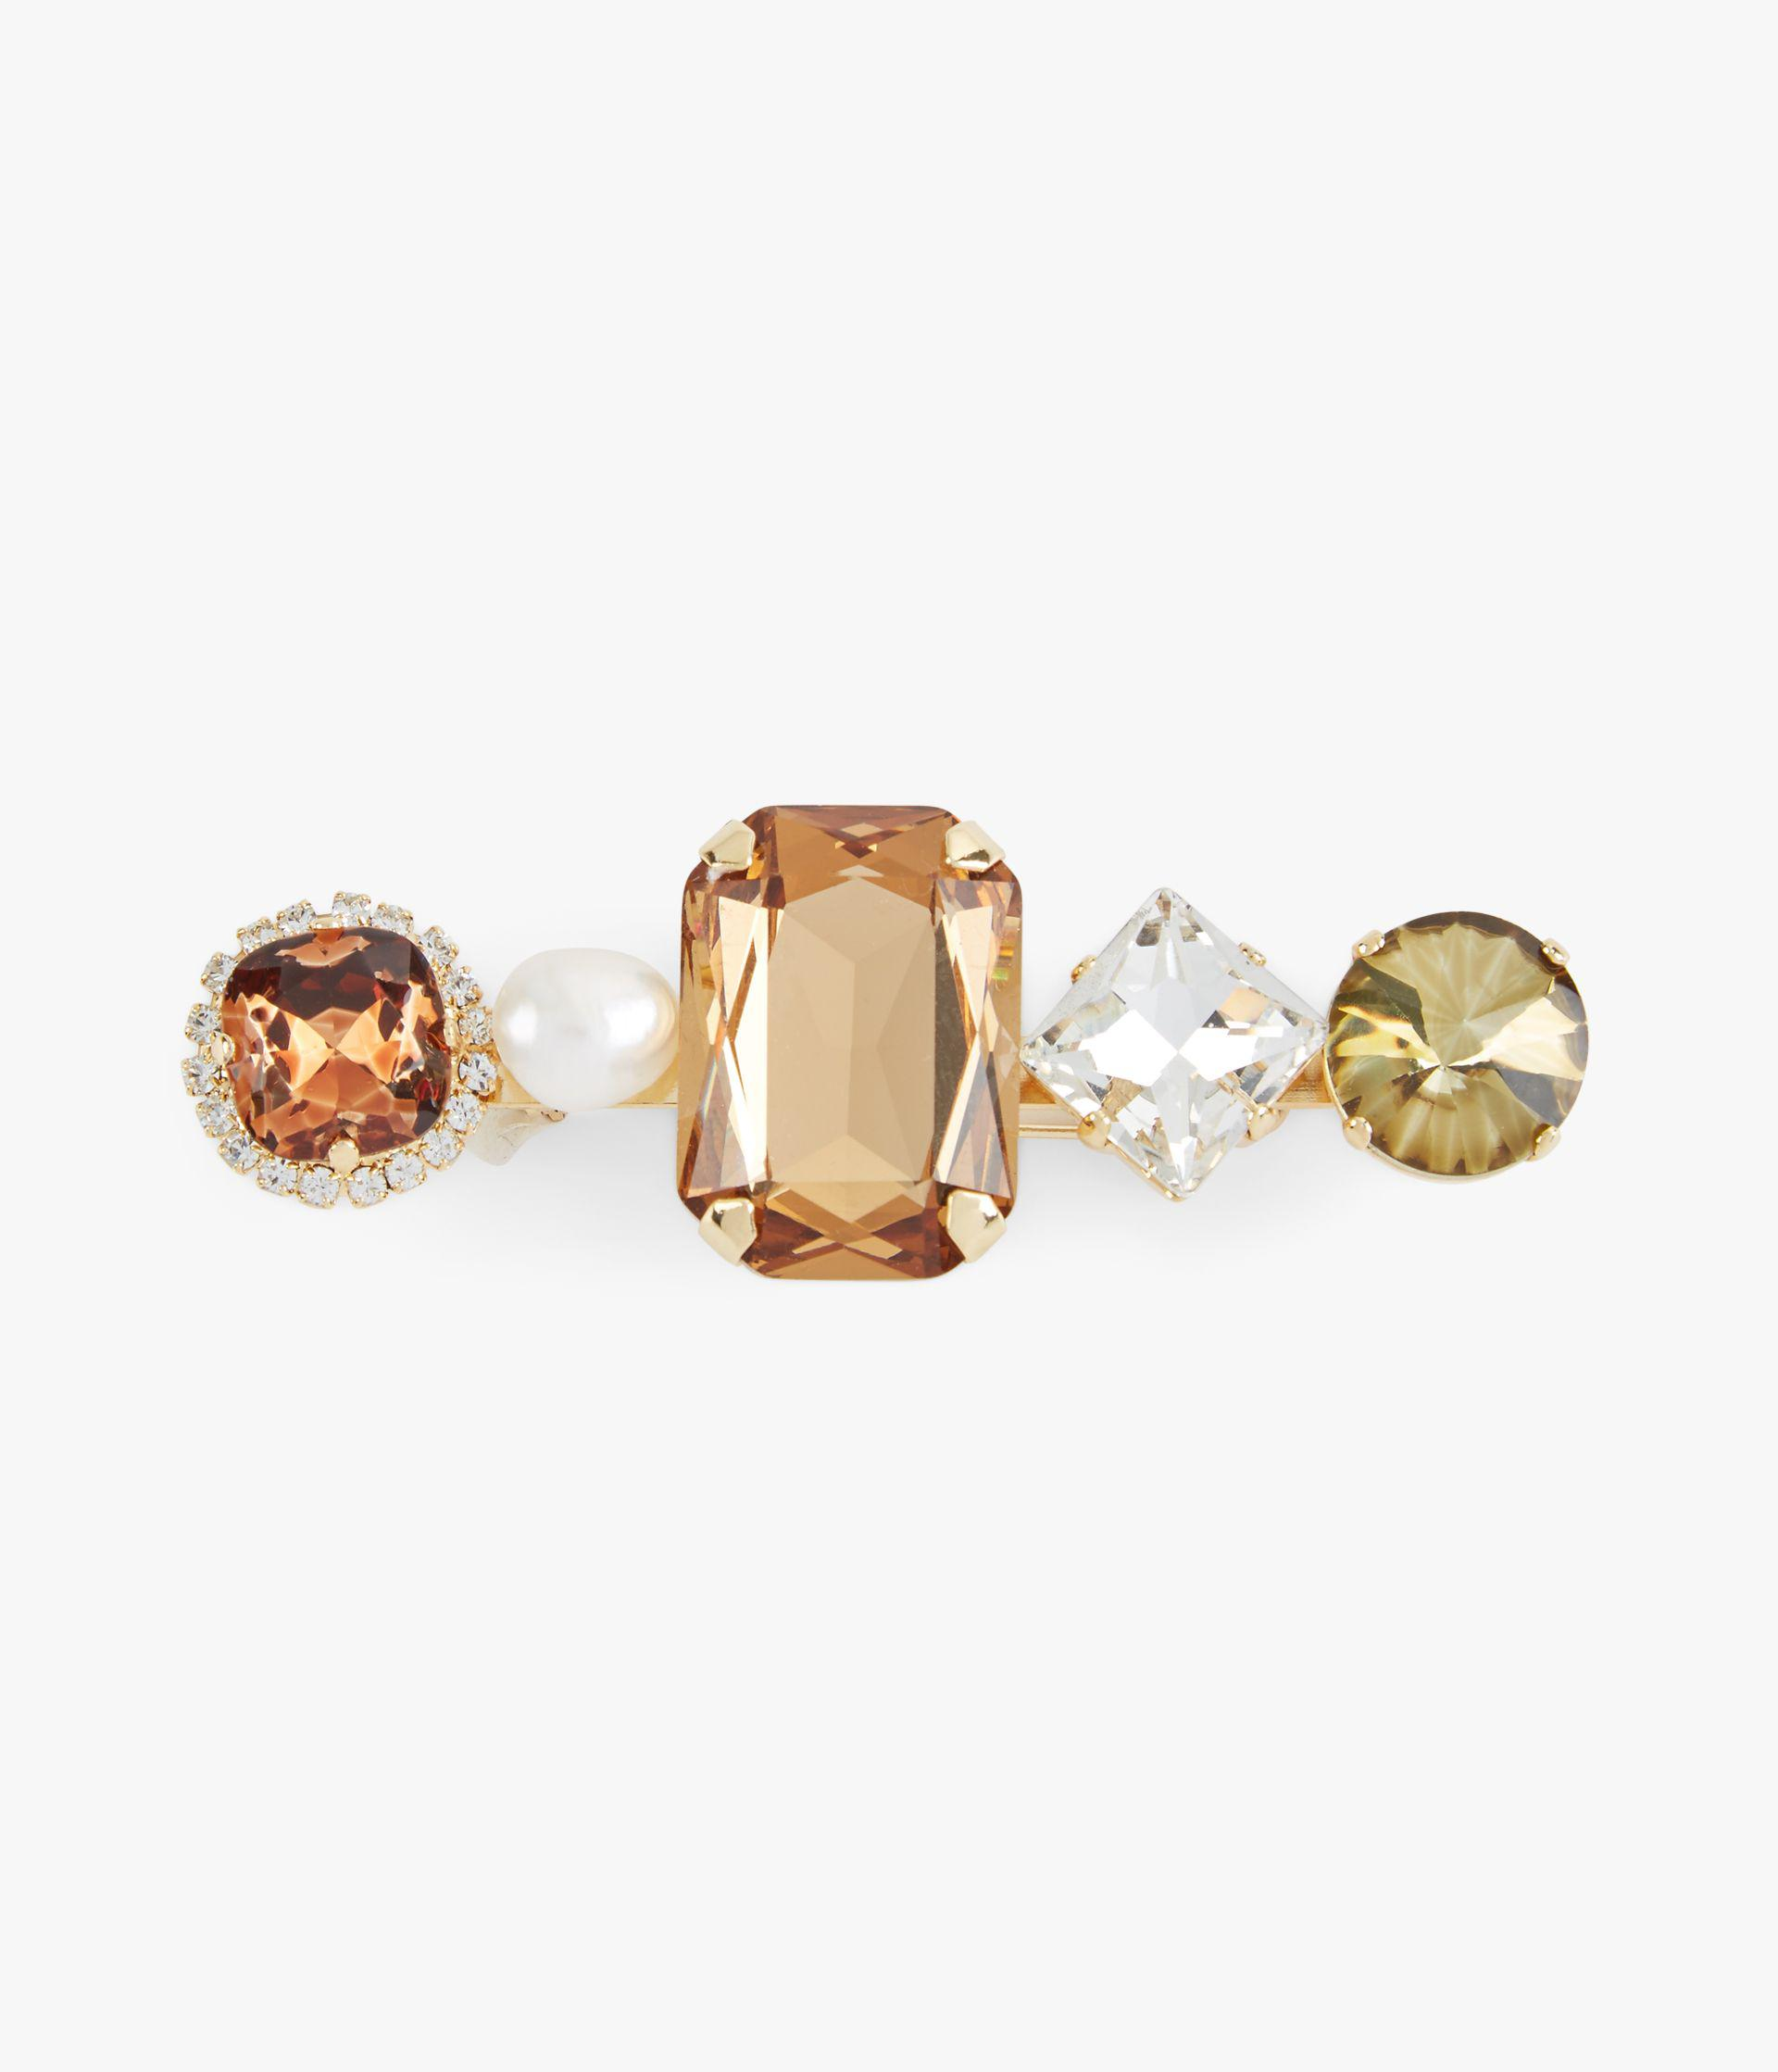 Smoked Topaz Cluster Crystal Brooch